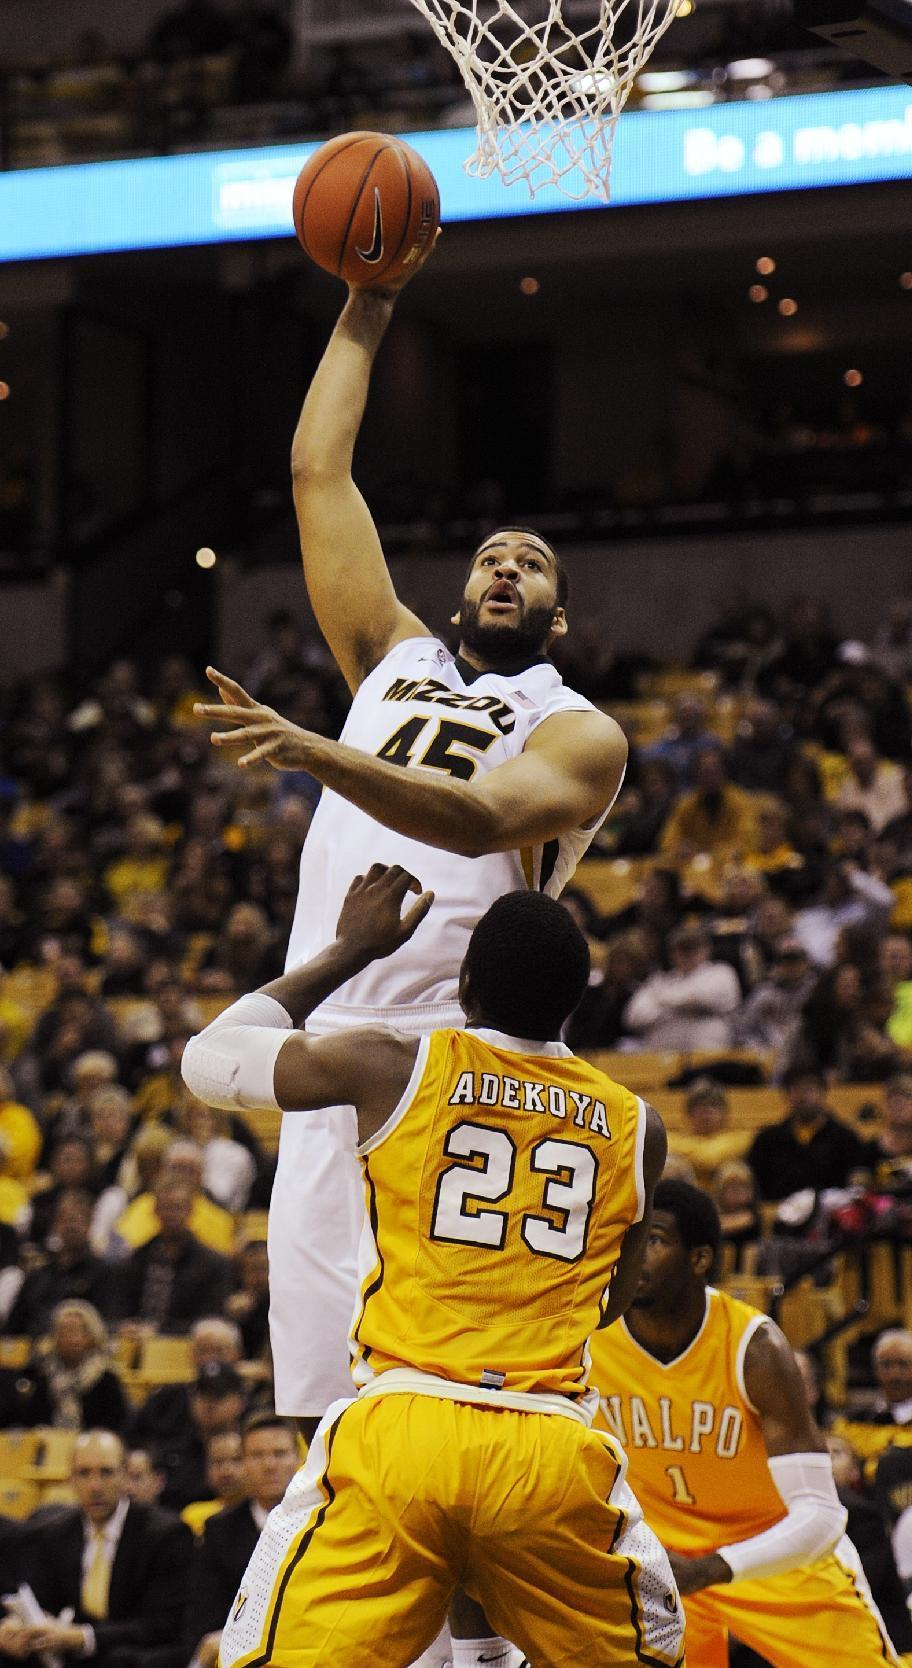 Missouri's Keanau Post, top, shoots over Valparaiso's Jubril Adekoya, bottom, during the first half of an NCAA college basketball game Sunday, Nov. 16, 2014, in Columbia, Mo. (AP Photo/L.G. Patterson)